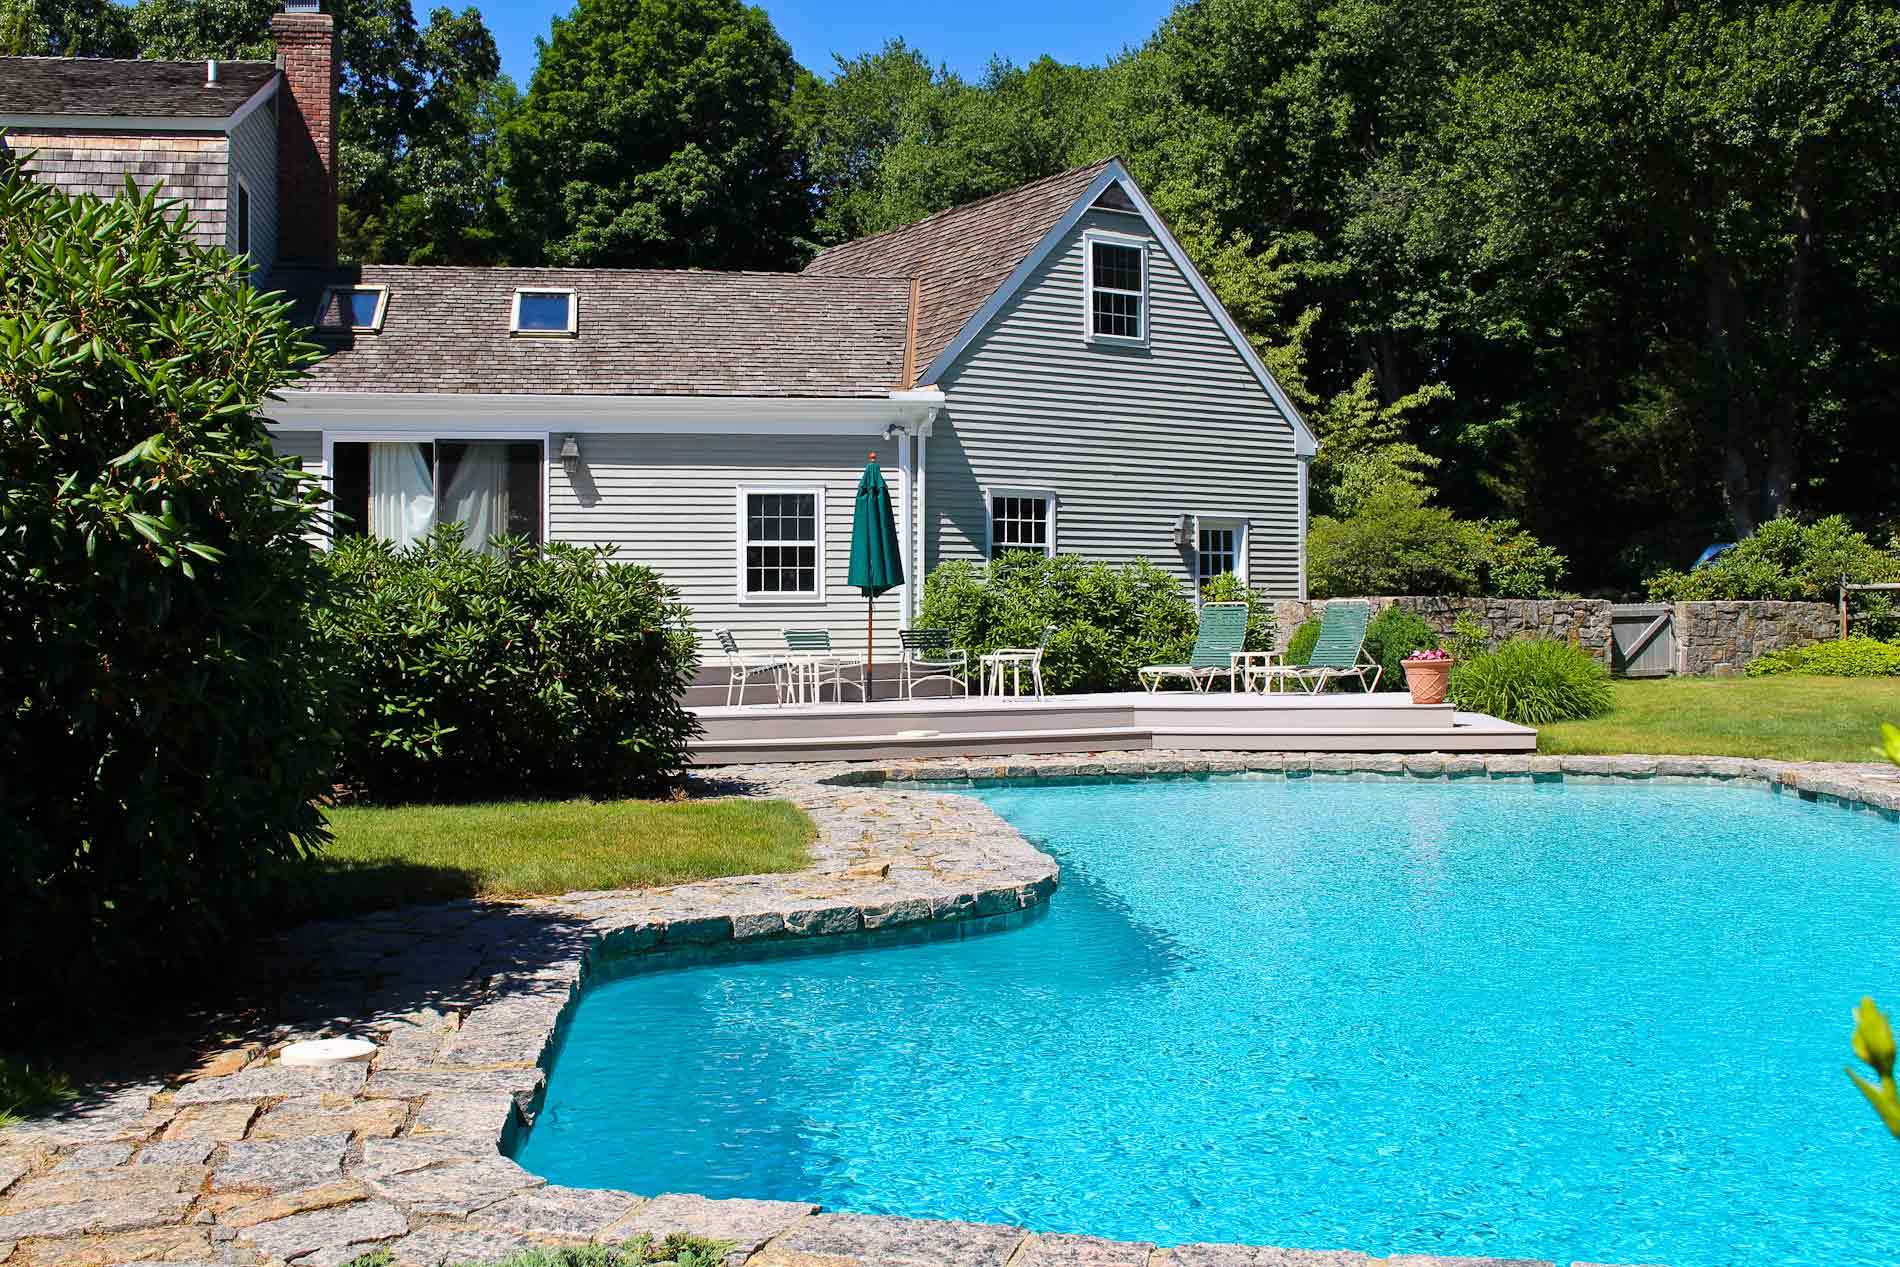 Homes with swimming pool for sale in easton ct find and Houses for sale in london with swimming pool